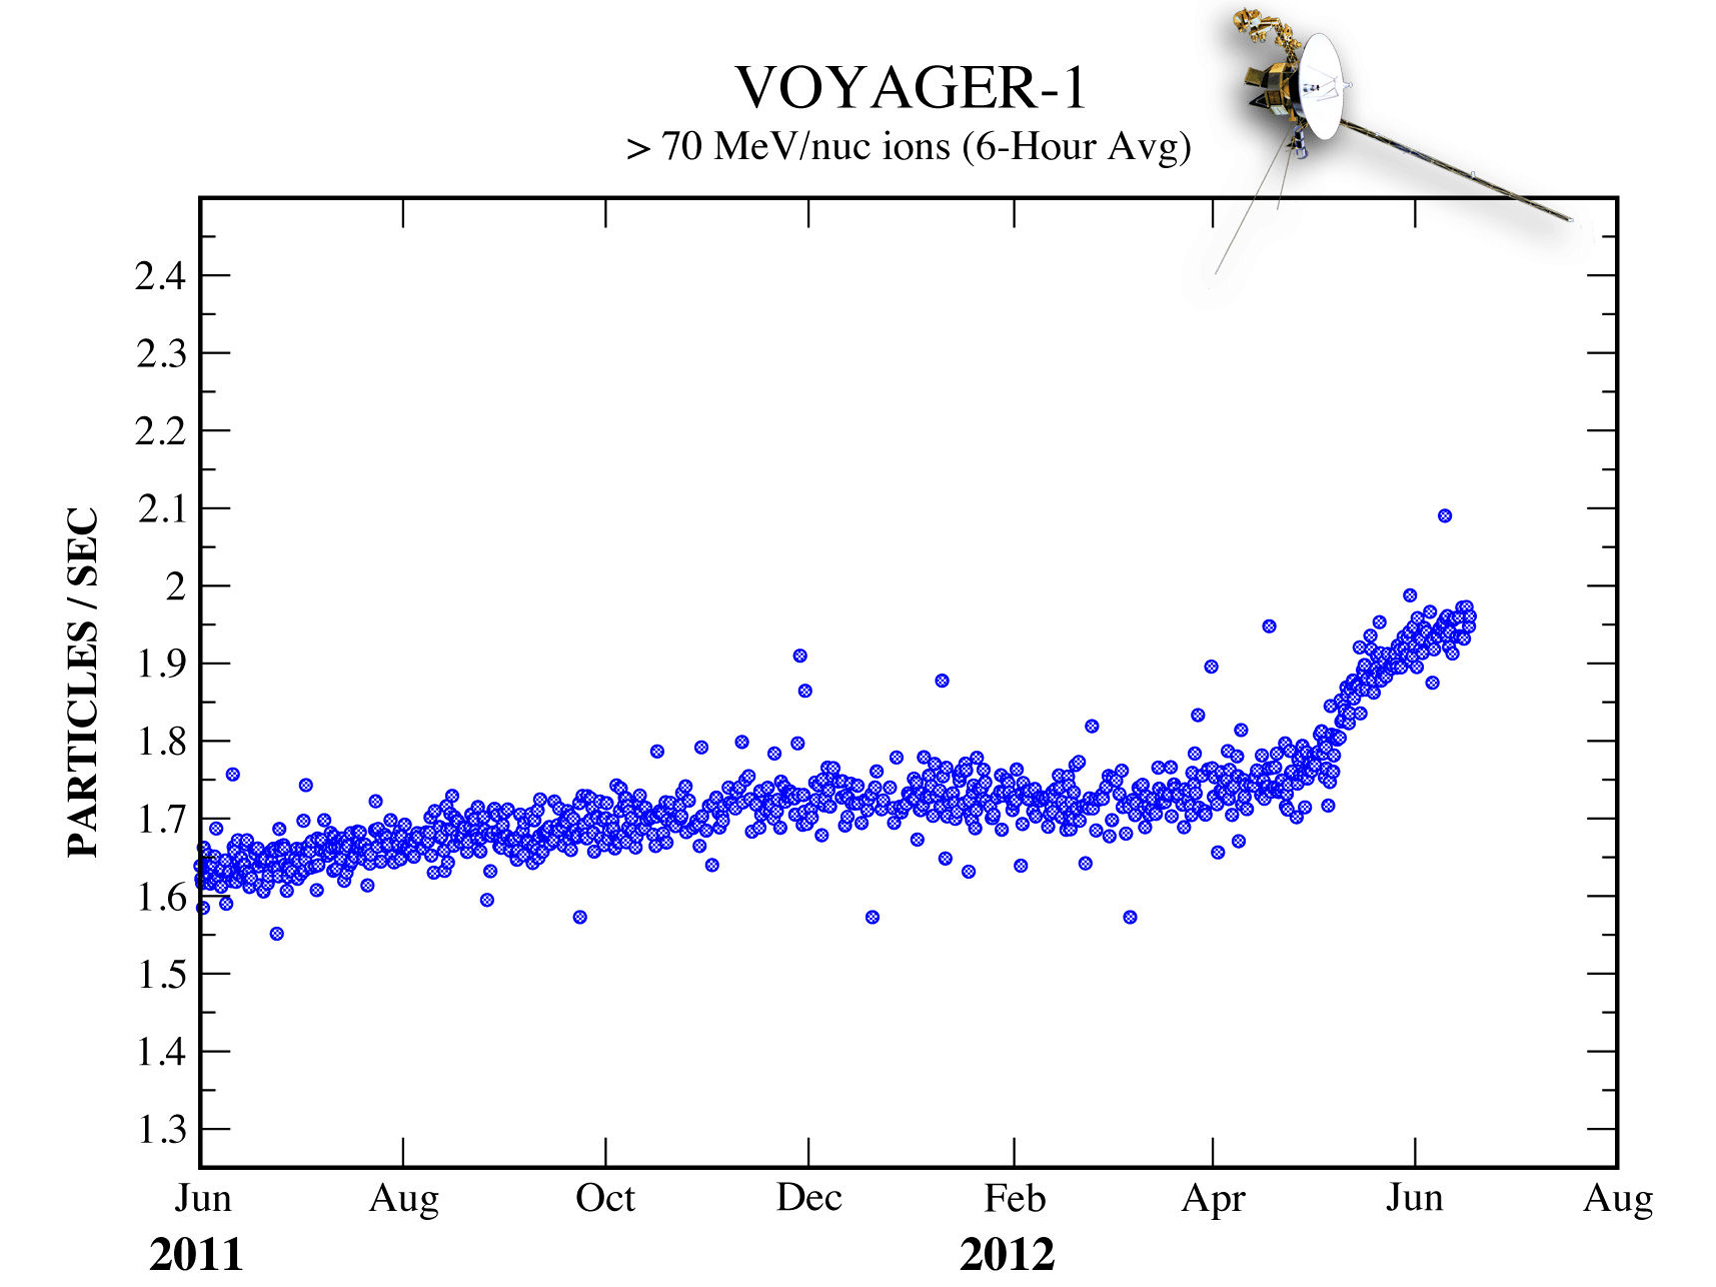 Sharp Increase In Cosmic Rays Reported By Voyager 1 At ...